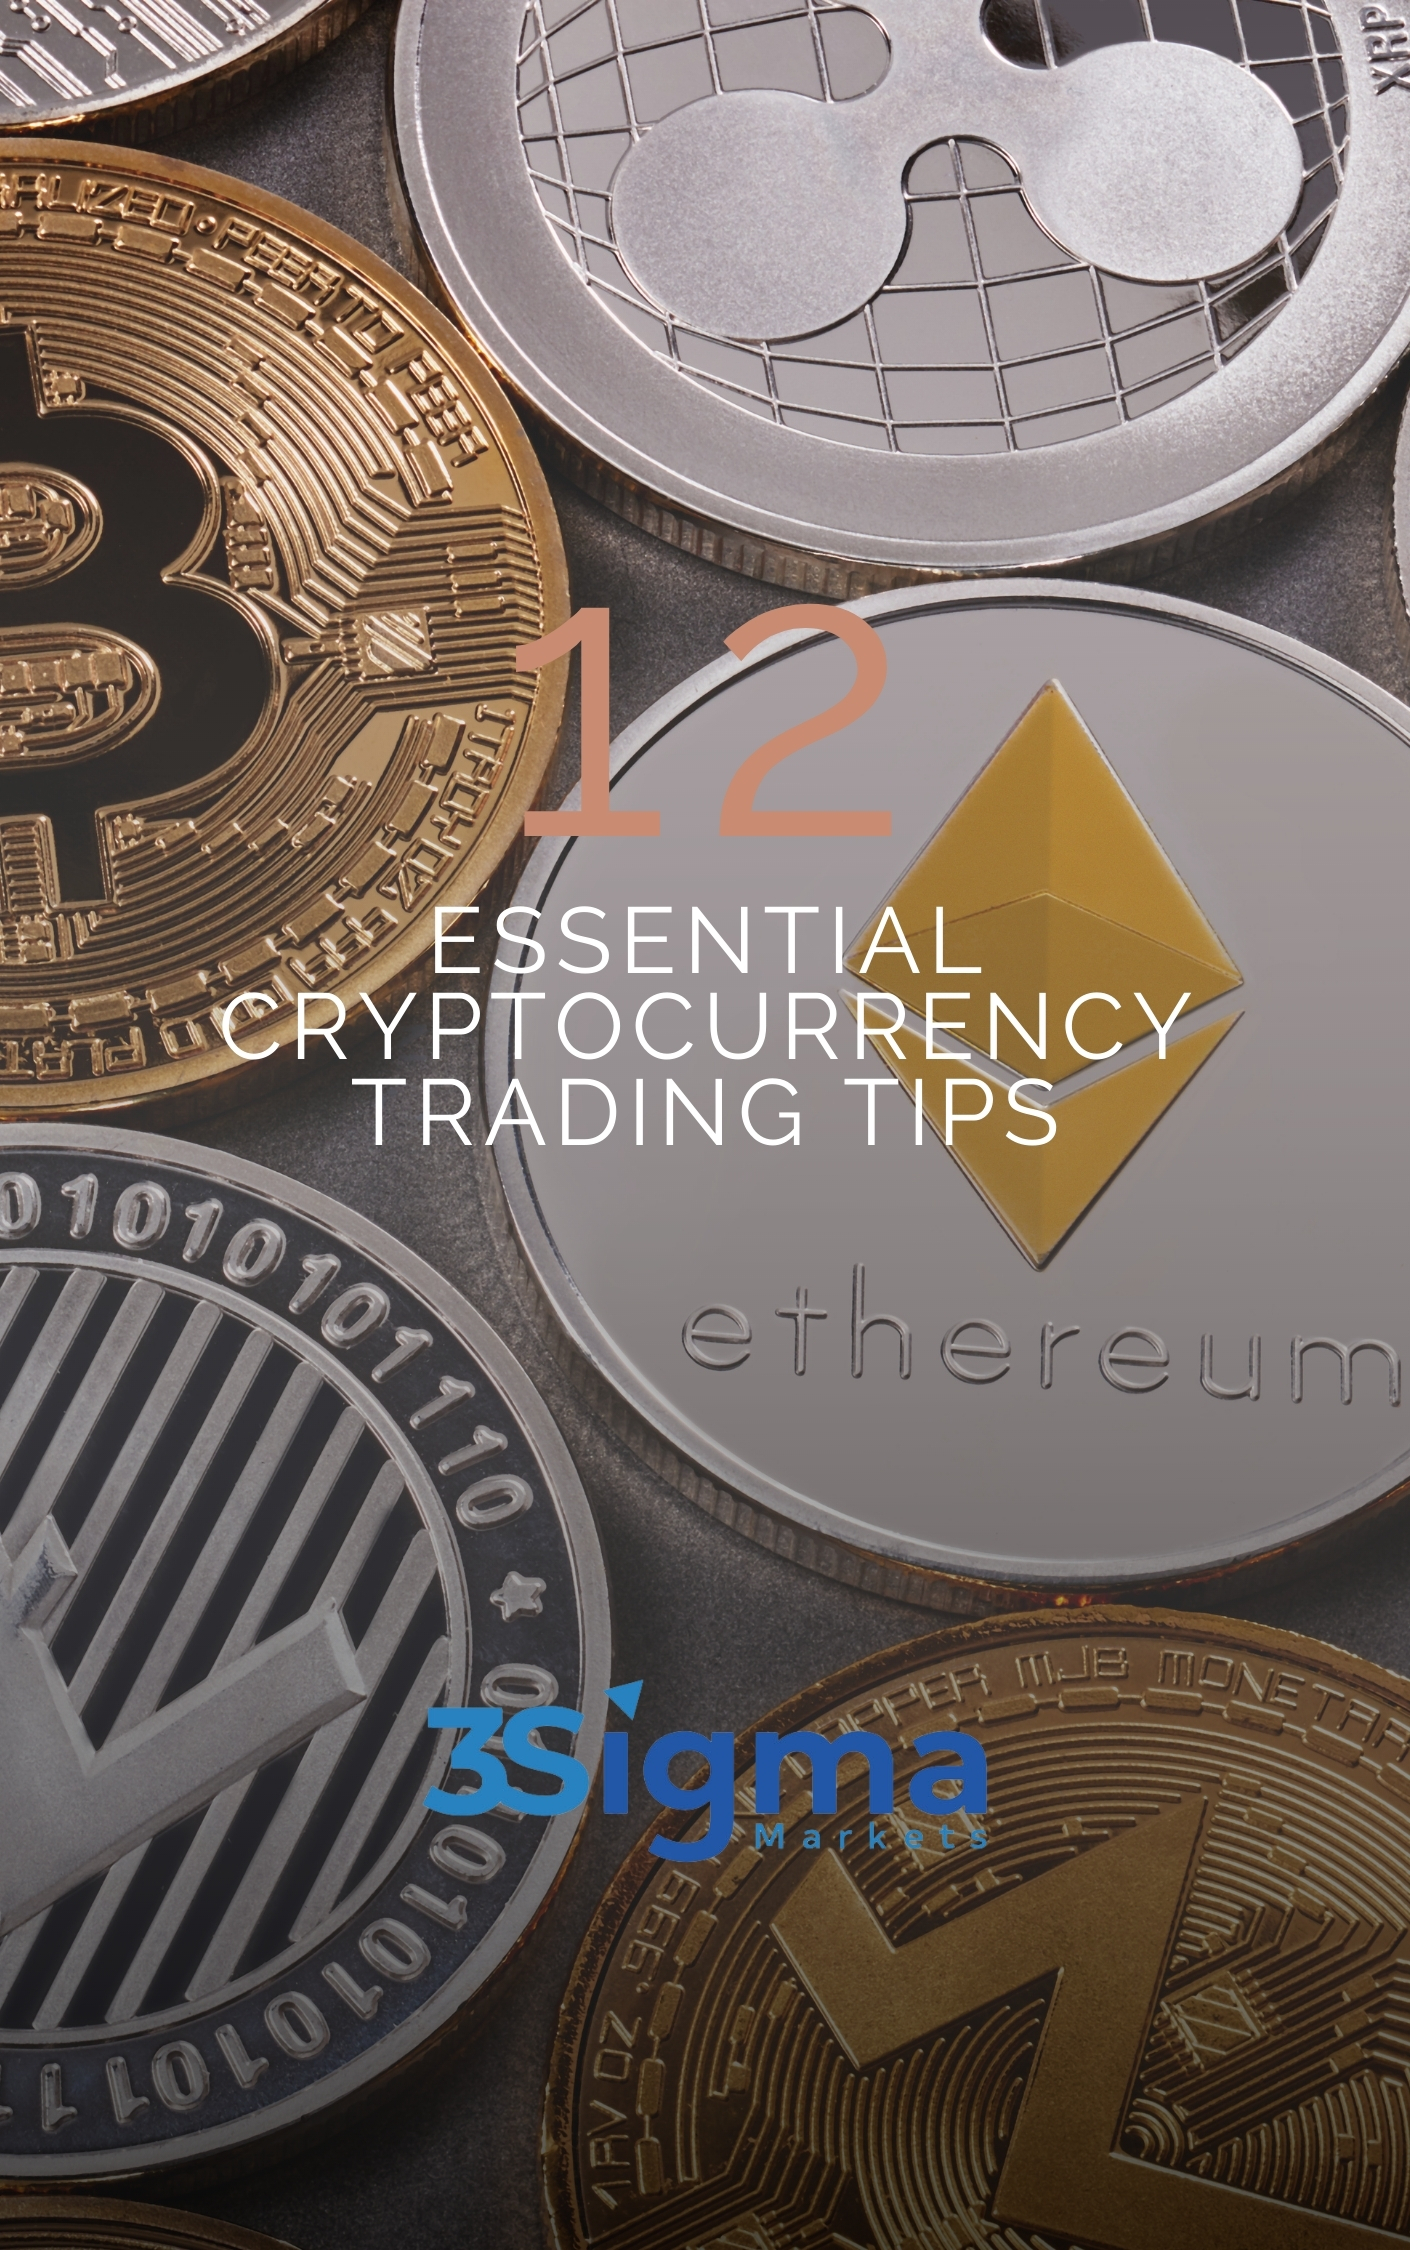 12 Essential Cryptocurrency Trading Tips